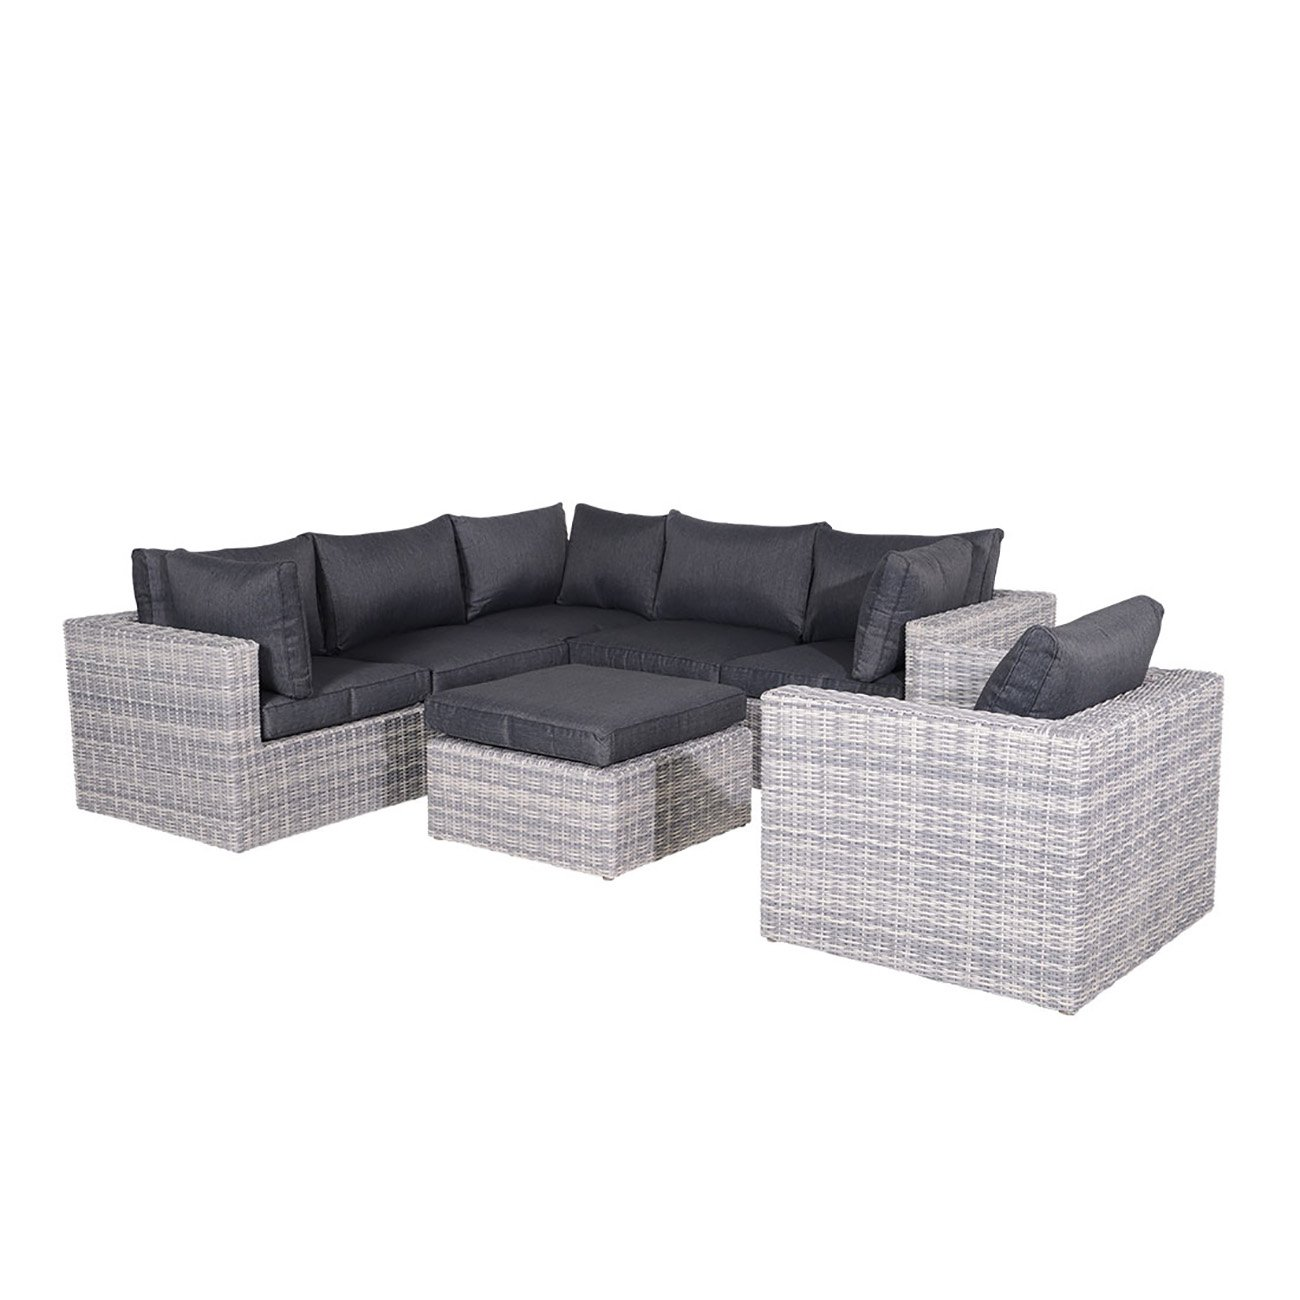 gartenlounge polyrattan outliv silverbird 5 tlg grau. Black Bedroom Furniture Sets. Home Design Ideas